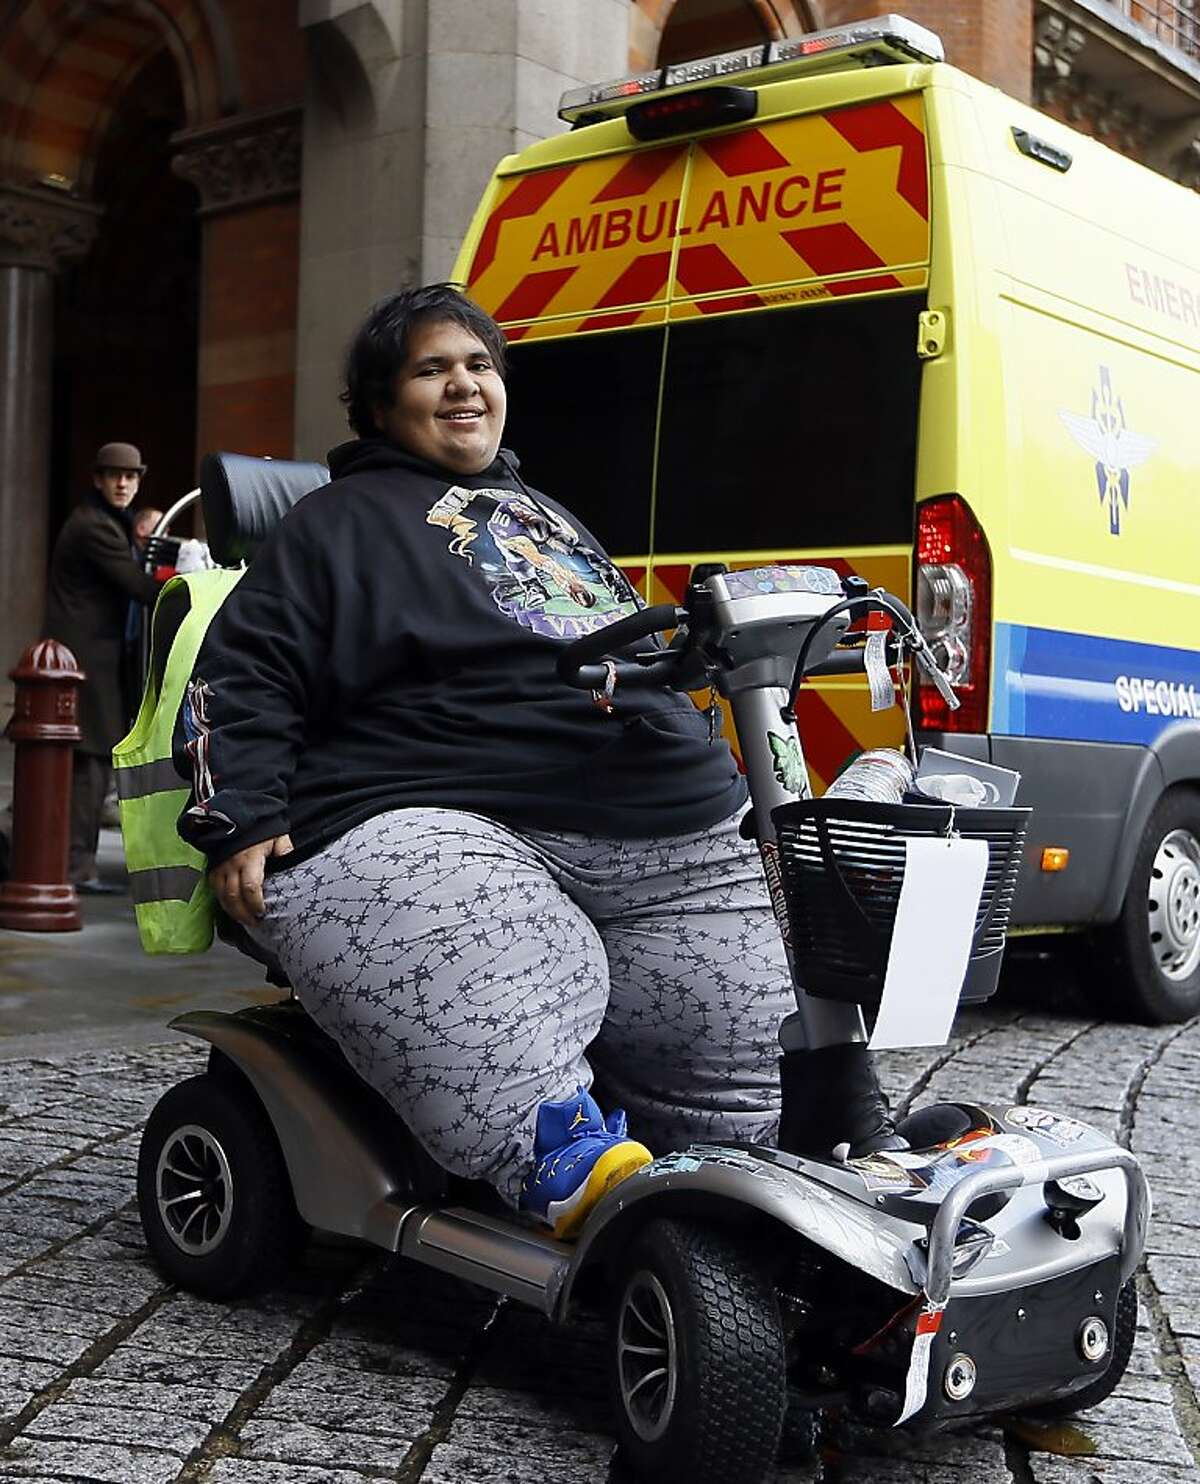 Deemed 'too fat to fly,' by British Airlines, Frenchman Kevin Chenais has now been refused travel on a train by Eurostar, the service that connects England to France and Belgium, because of safety regulations. Eurostar did, however, offer to compensate Chenais, who suffers from a medical condition, for his London stay. He now is hoping to travel by ambulance and ferry back to France.